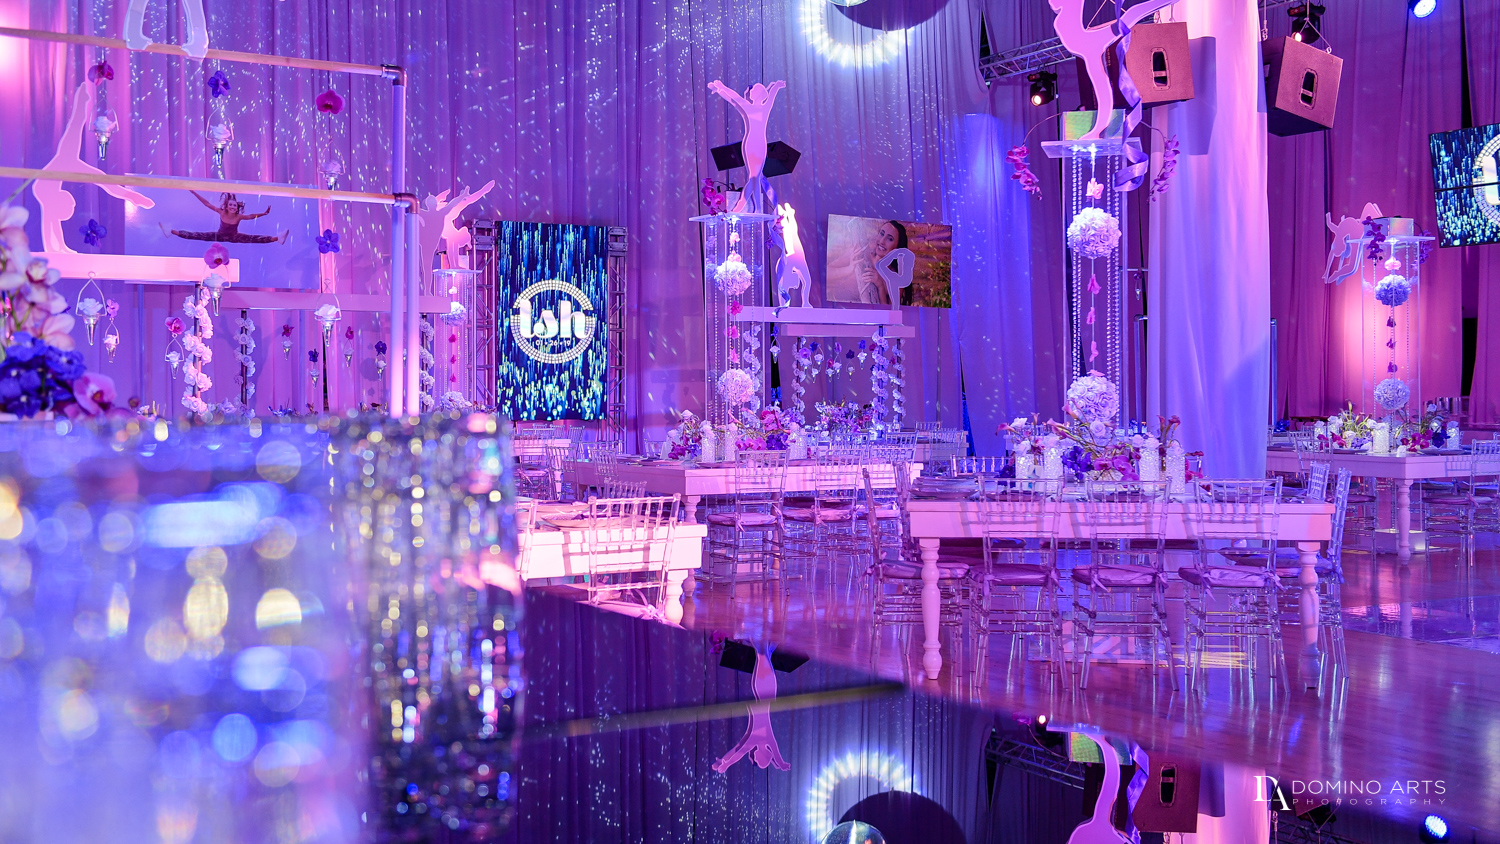 luxury decor at Gymnastics Theme Bat Mitzvah Photography at Xtreme Action Park by Domino Arts